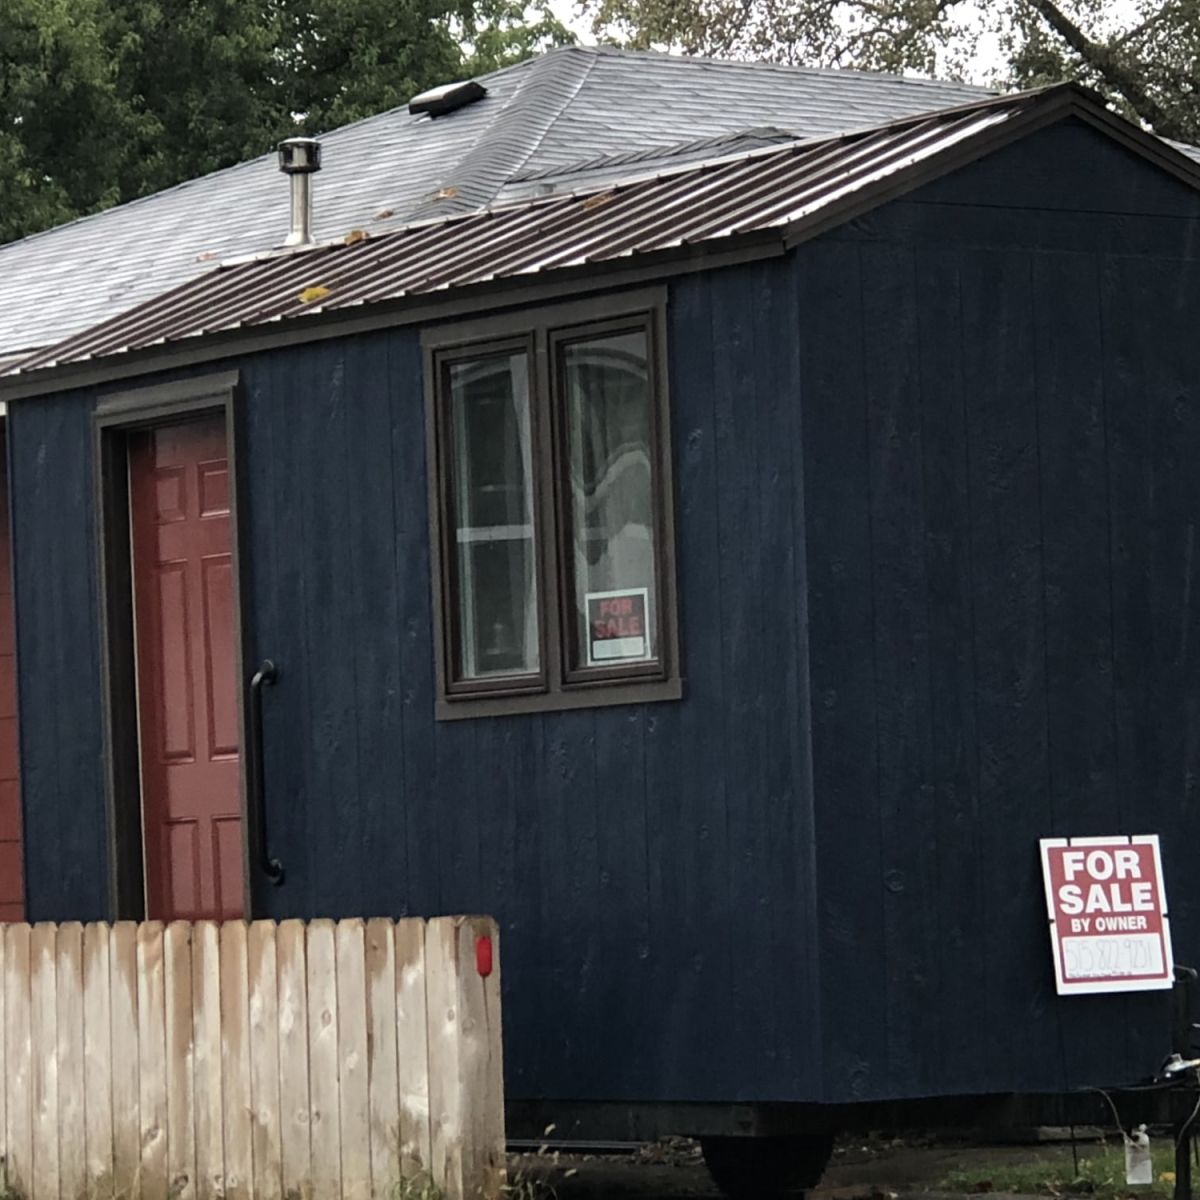 Small House For Rent: Tiny Houses For Sale In Iowa